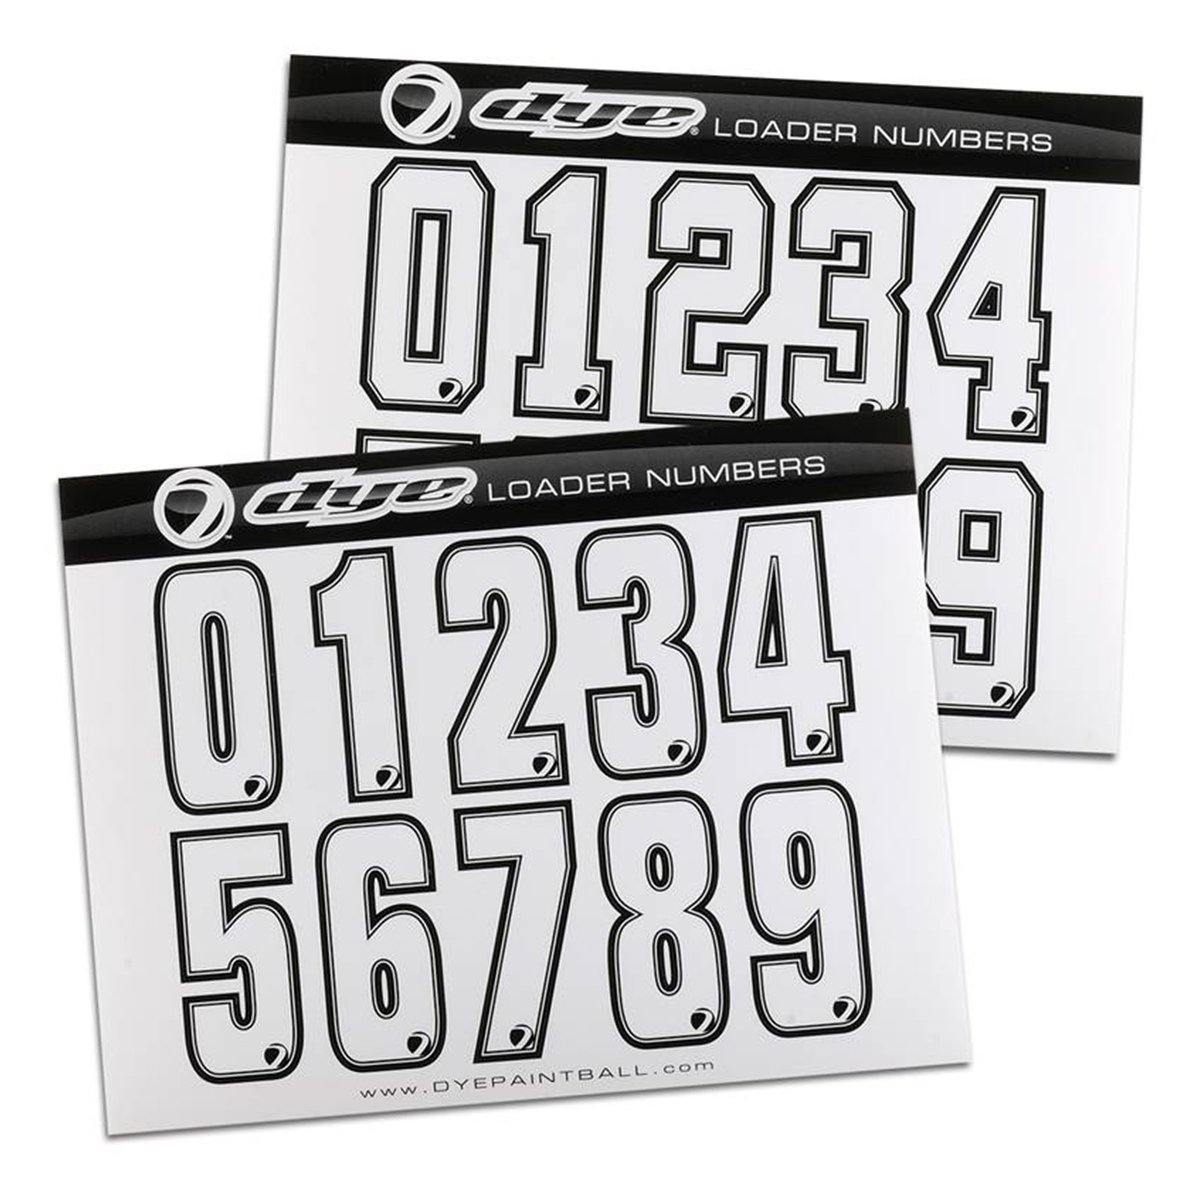 67a4459a4309b Dye Paintball Loader Number Stickers Dye Precision 0725239179388 ...